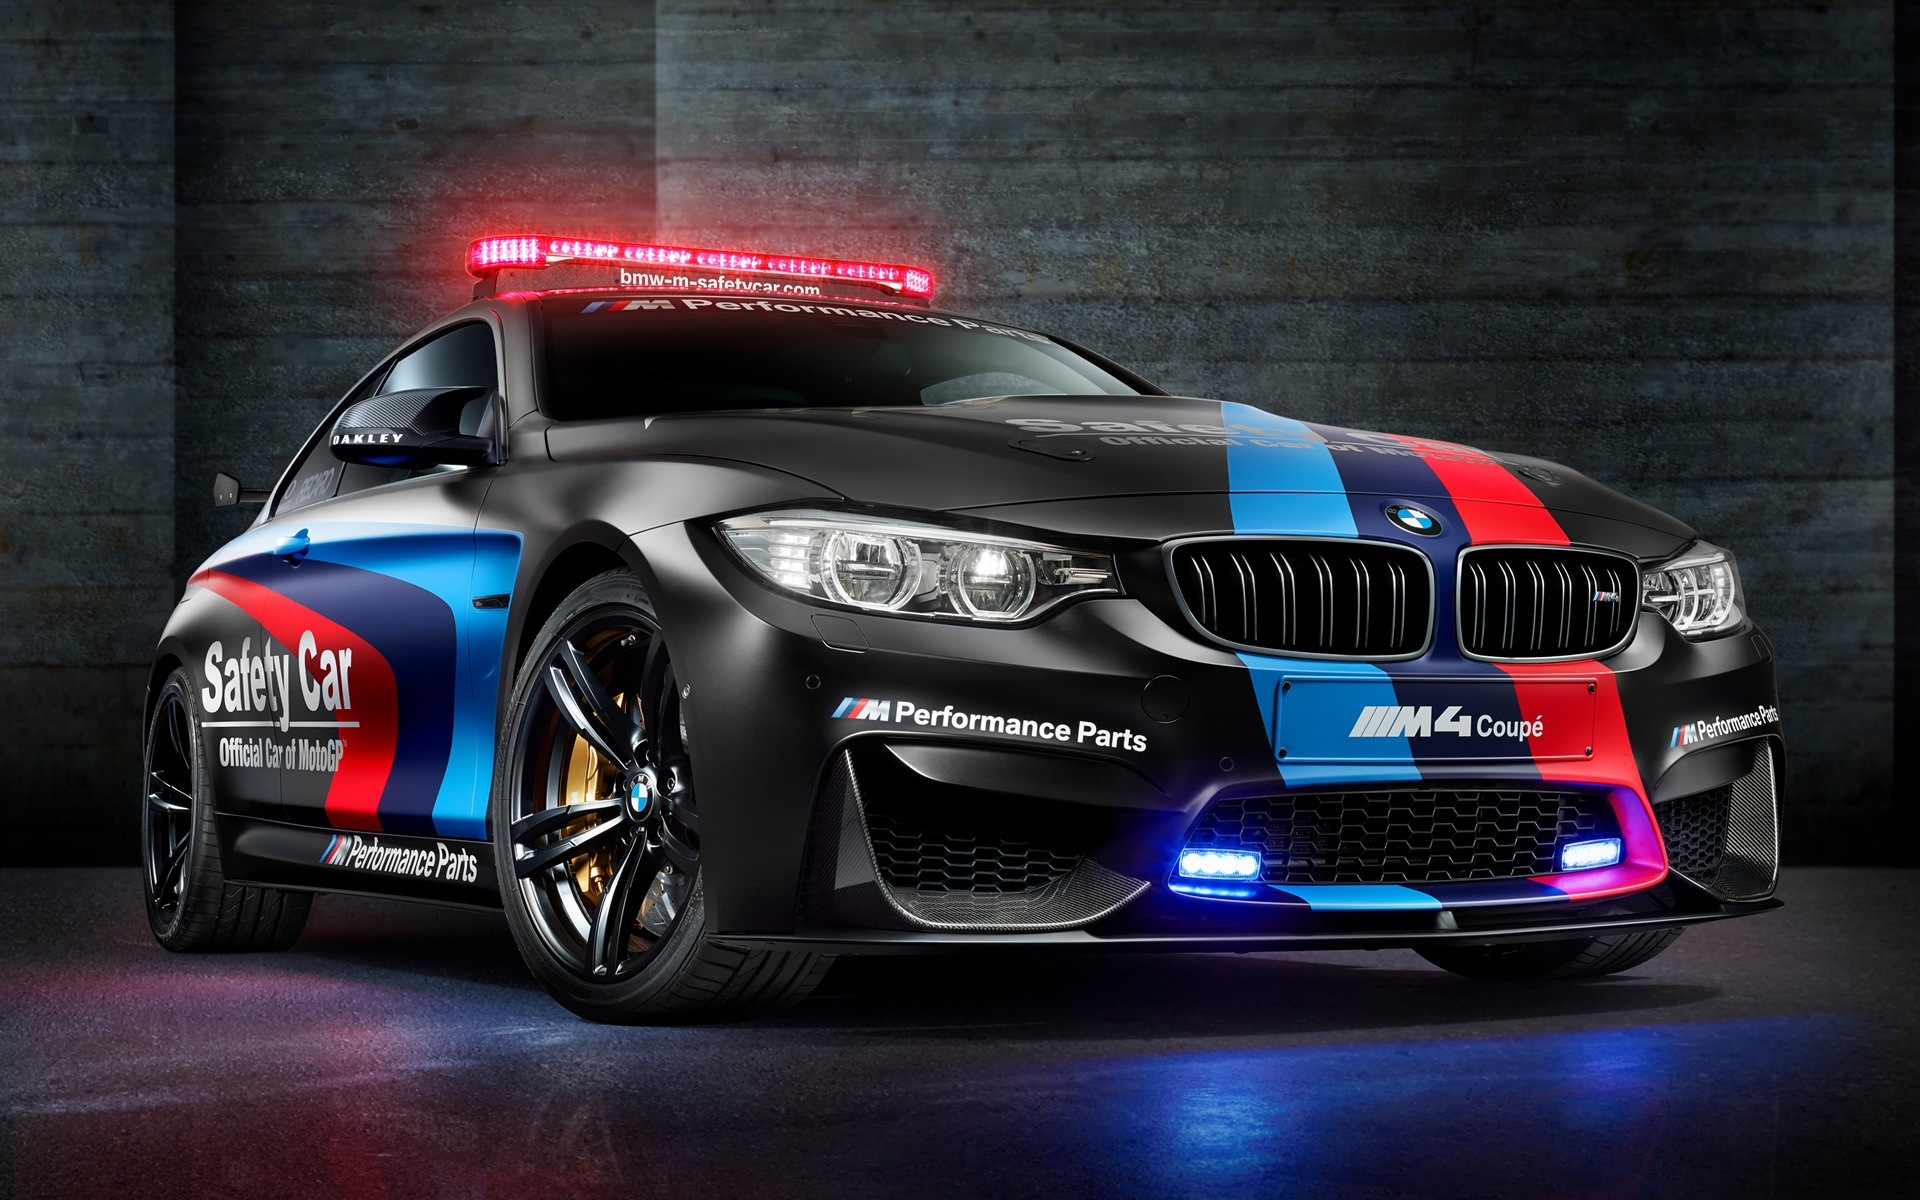 bmw-m-coupe-motogp-safety-car-Bmw-M-Coupe-Motogp-Safety-Car-And-Hd-wallpaper-wpc5802959